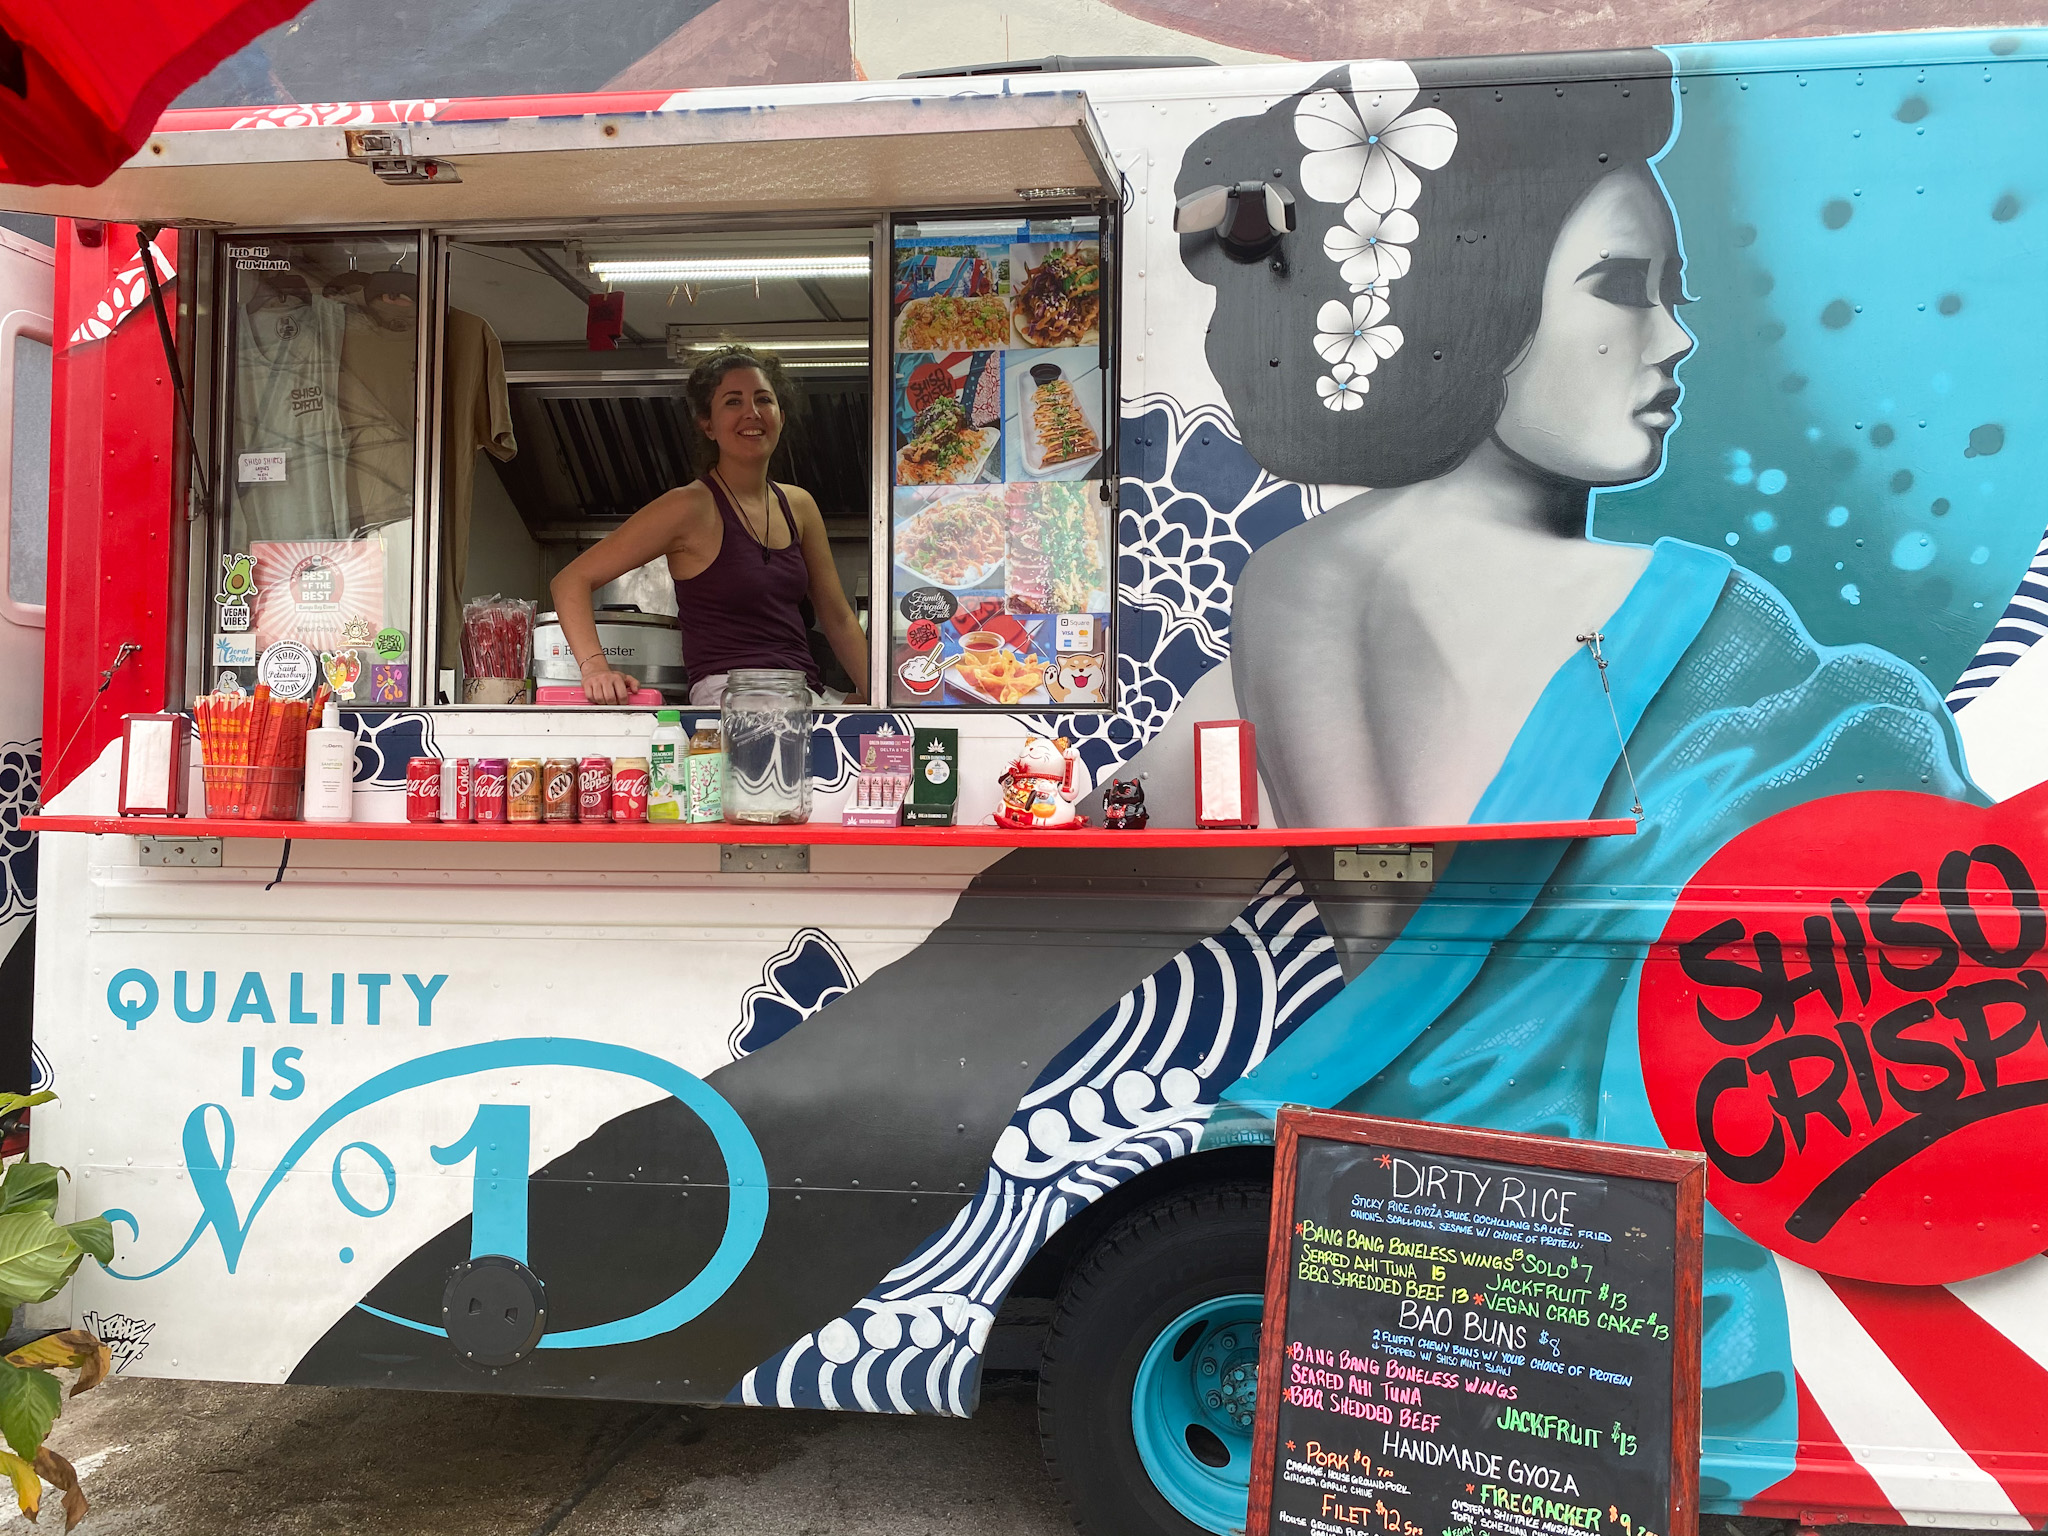 Ronicca and the Shiso Crispy truck at the Edge Collectie Urban Marketplace